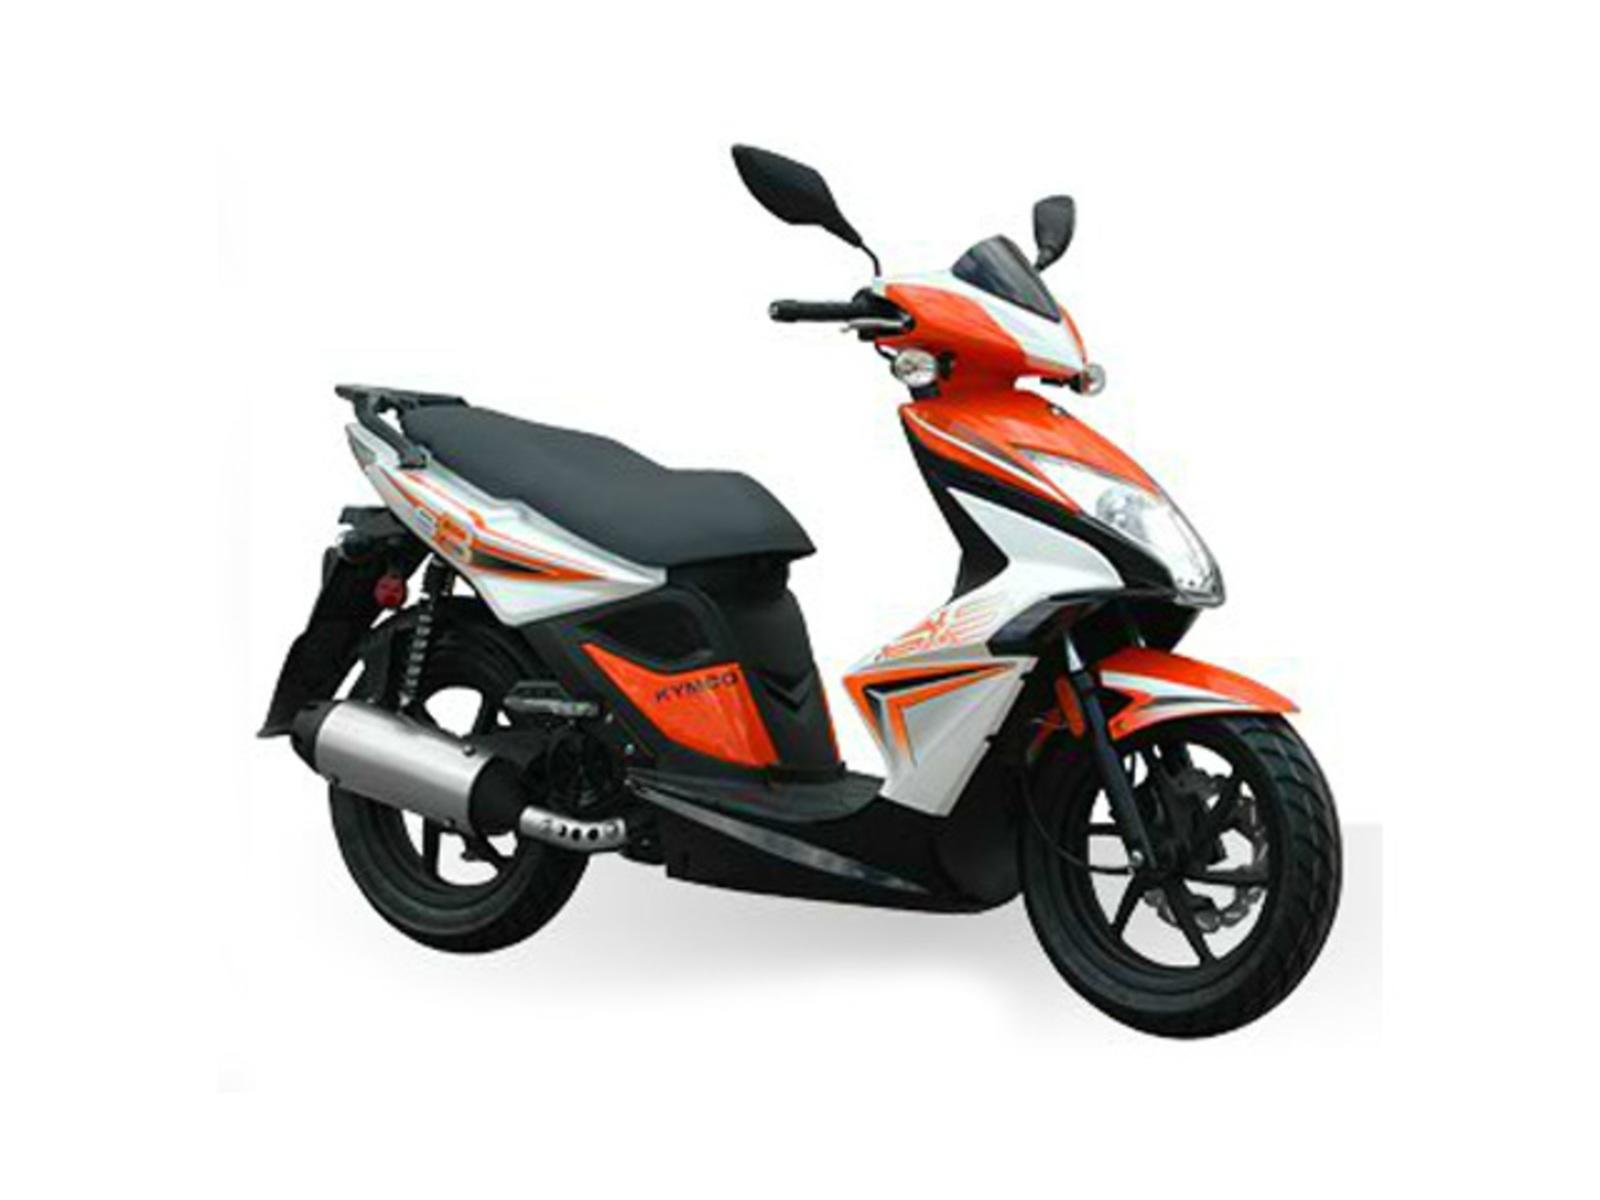 2014 kymco super 8 150 review top speed. Black Bedroom Furniture Sets. Home Design Ideas